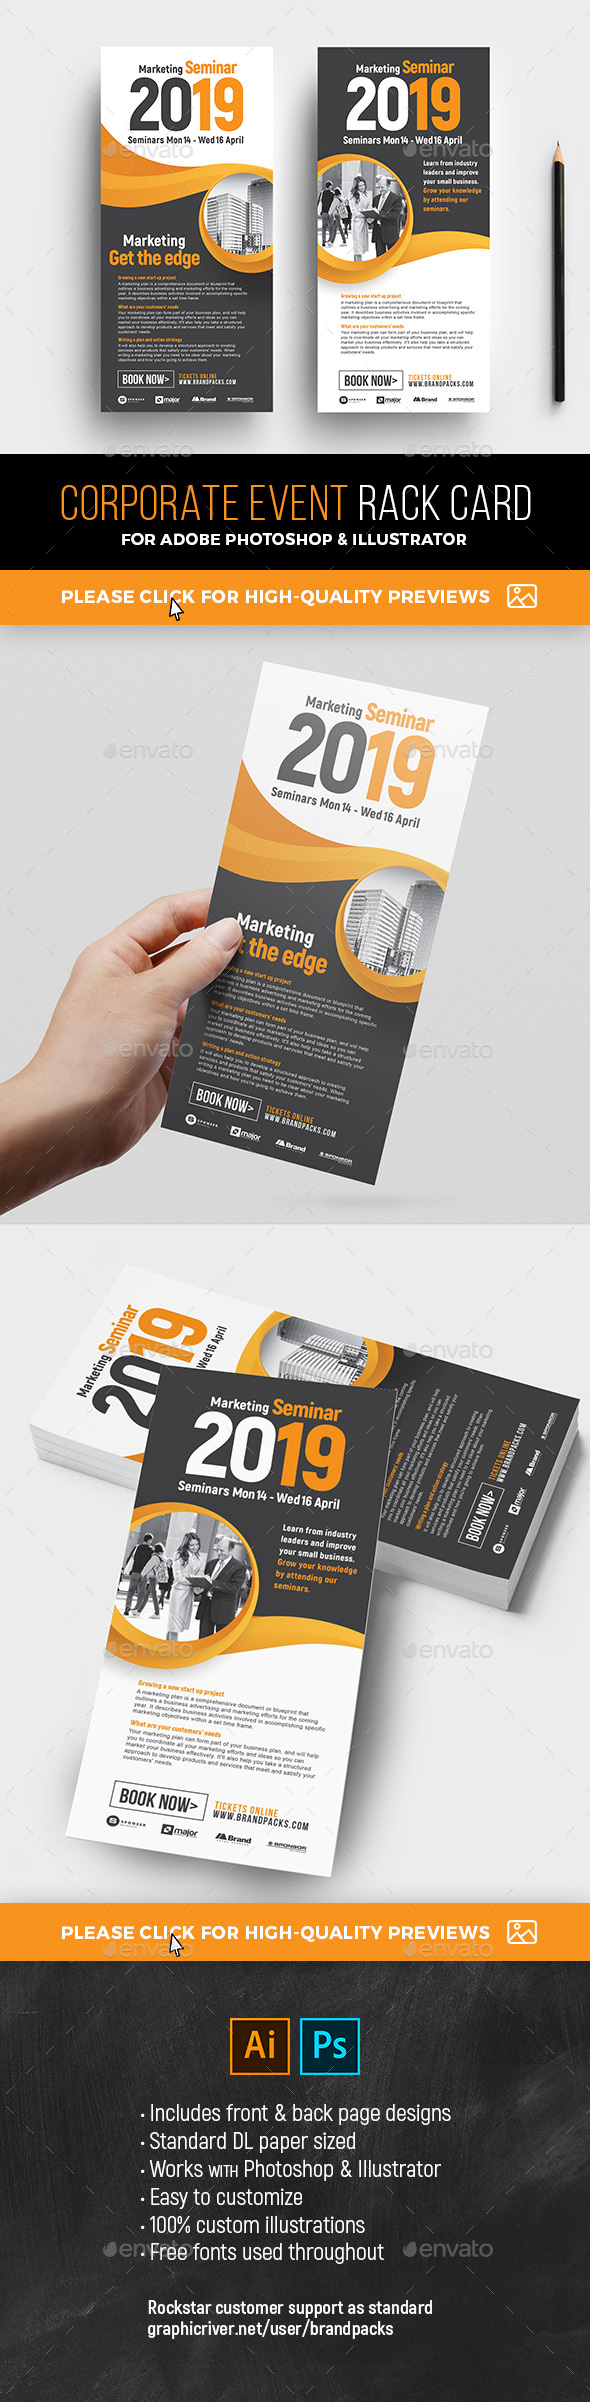 GraphicRiver Corporate Event Rack Card Template 21200083